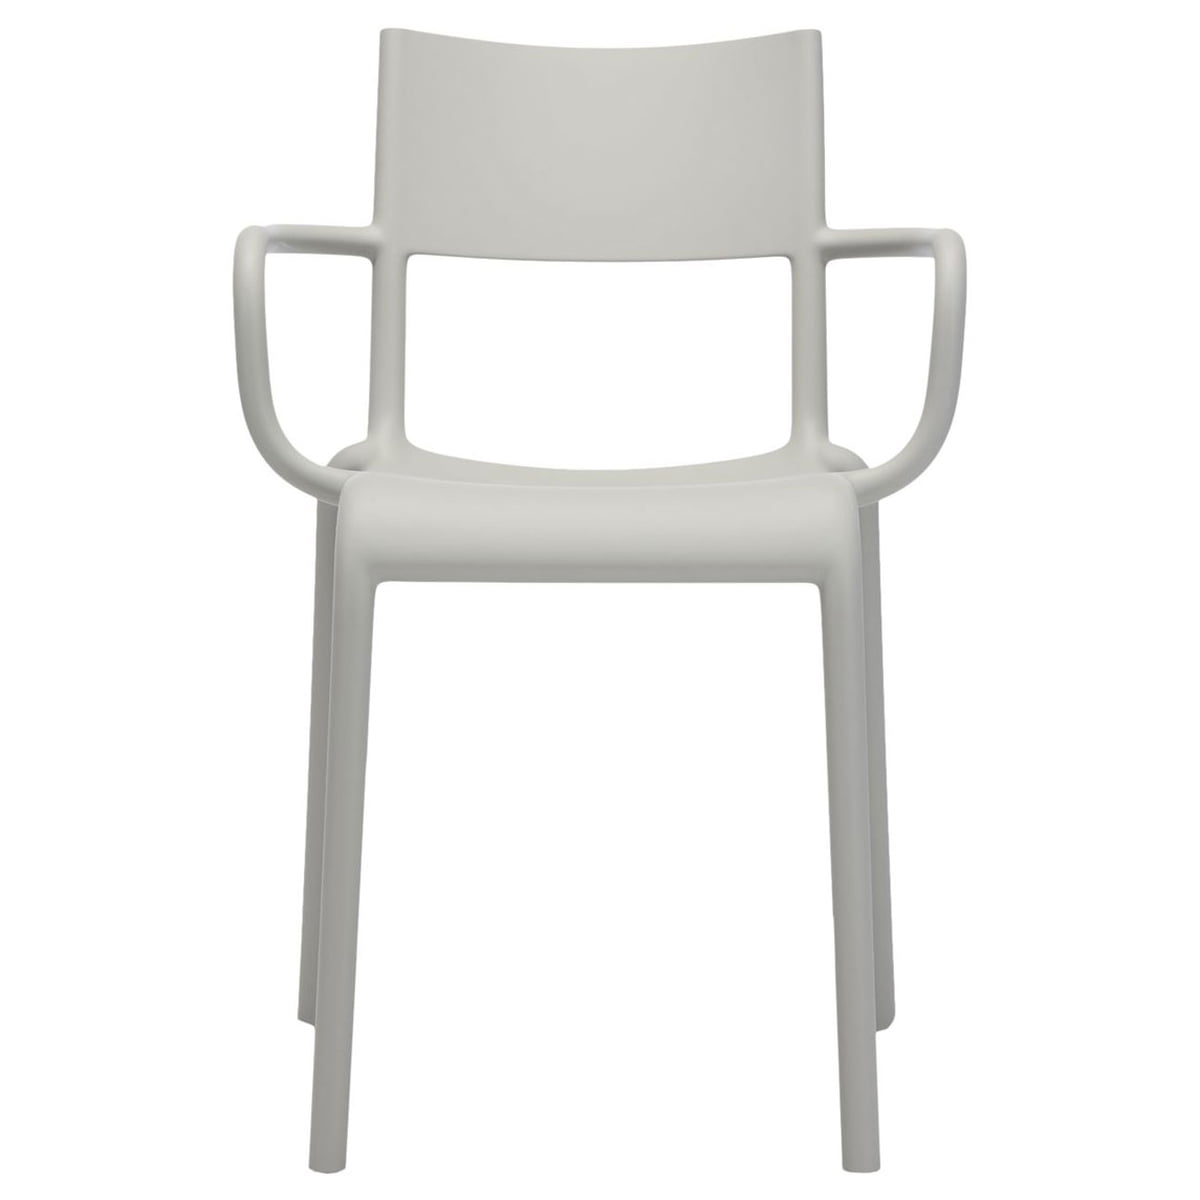 Enjoyable Kartell Generic A Chair White Inzonedesignstudio Interior Chair Design Inzonedesignstudiocom